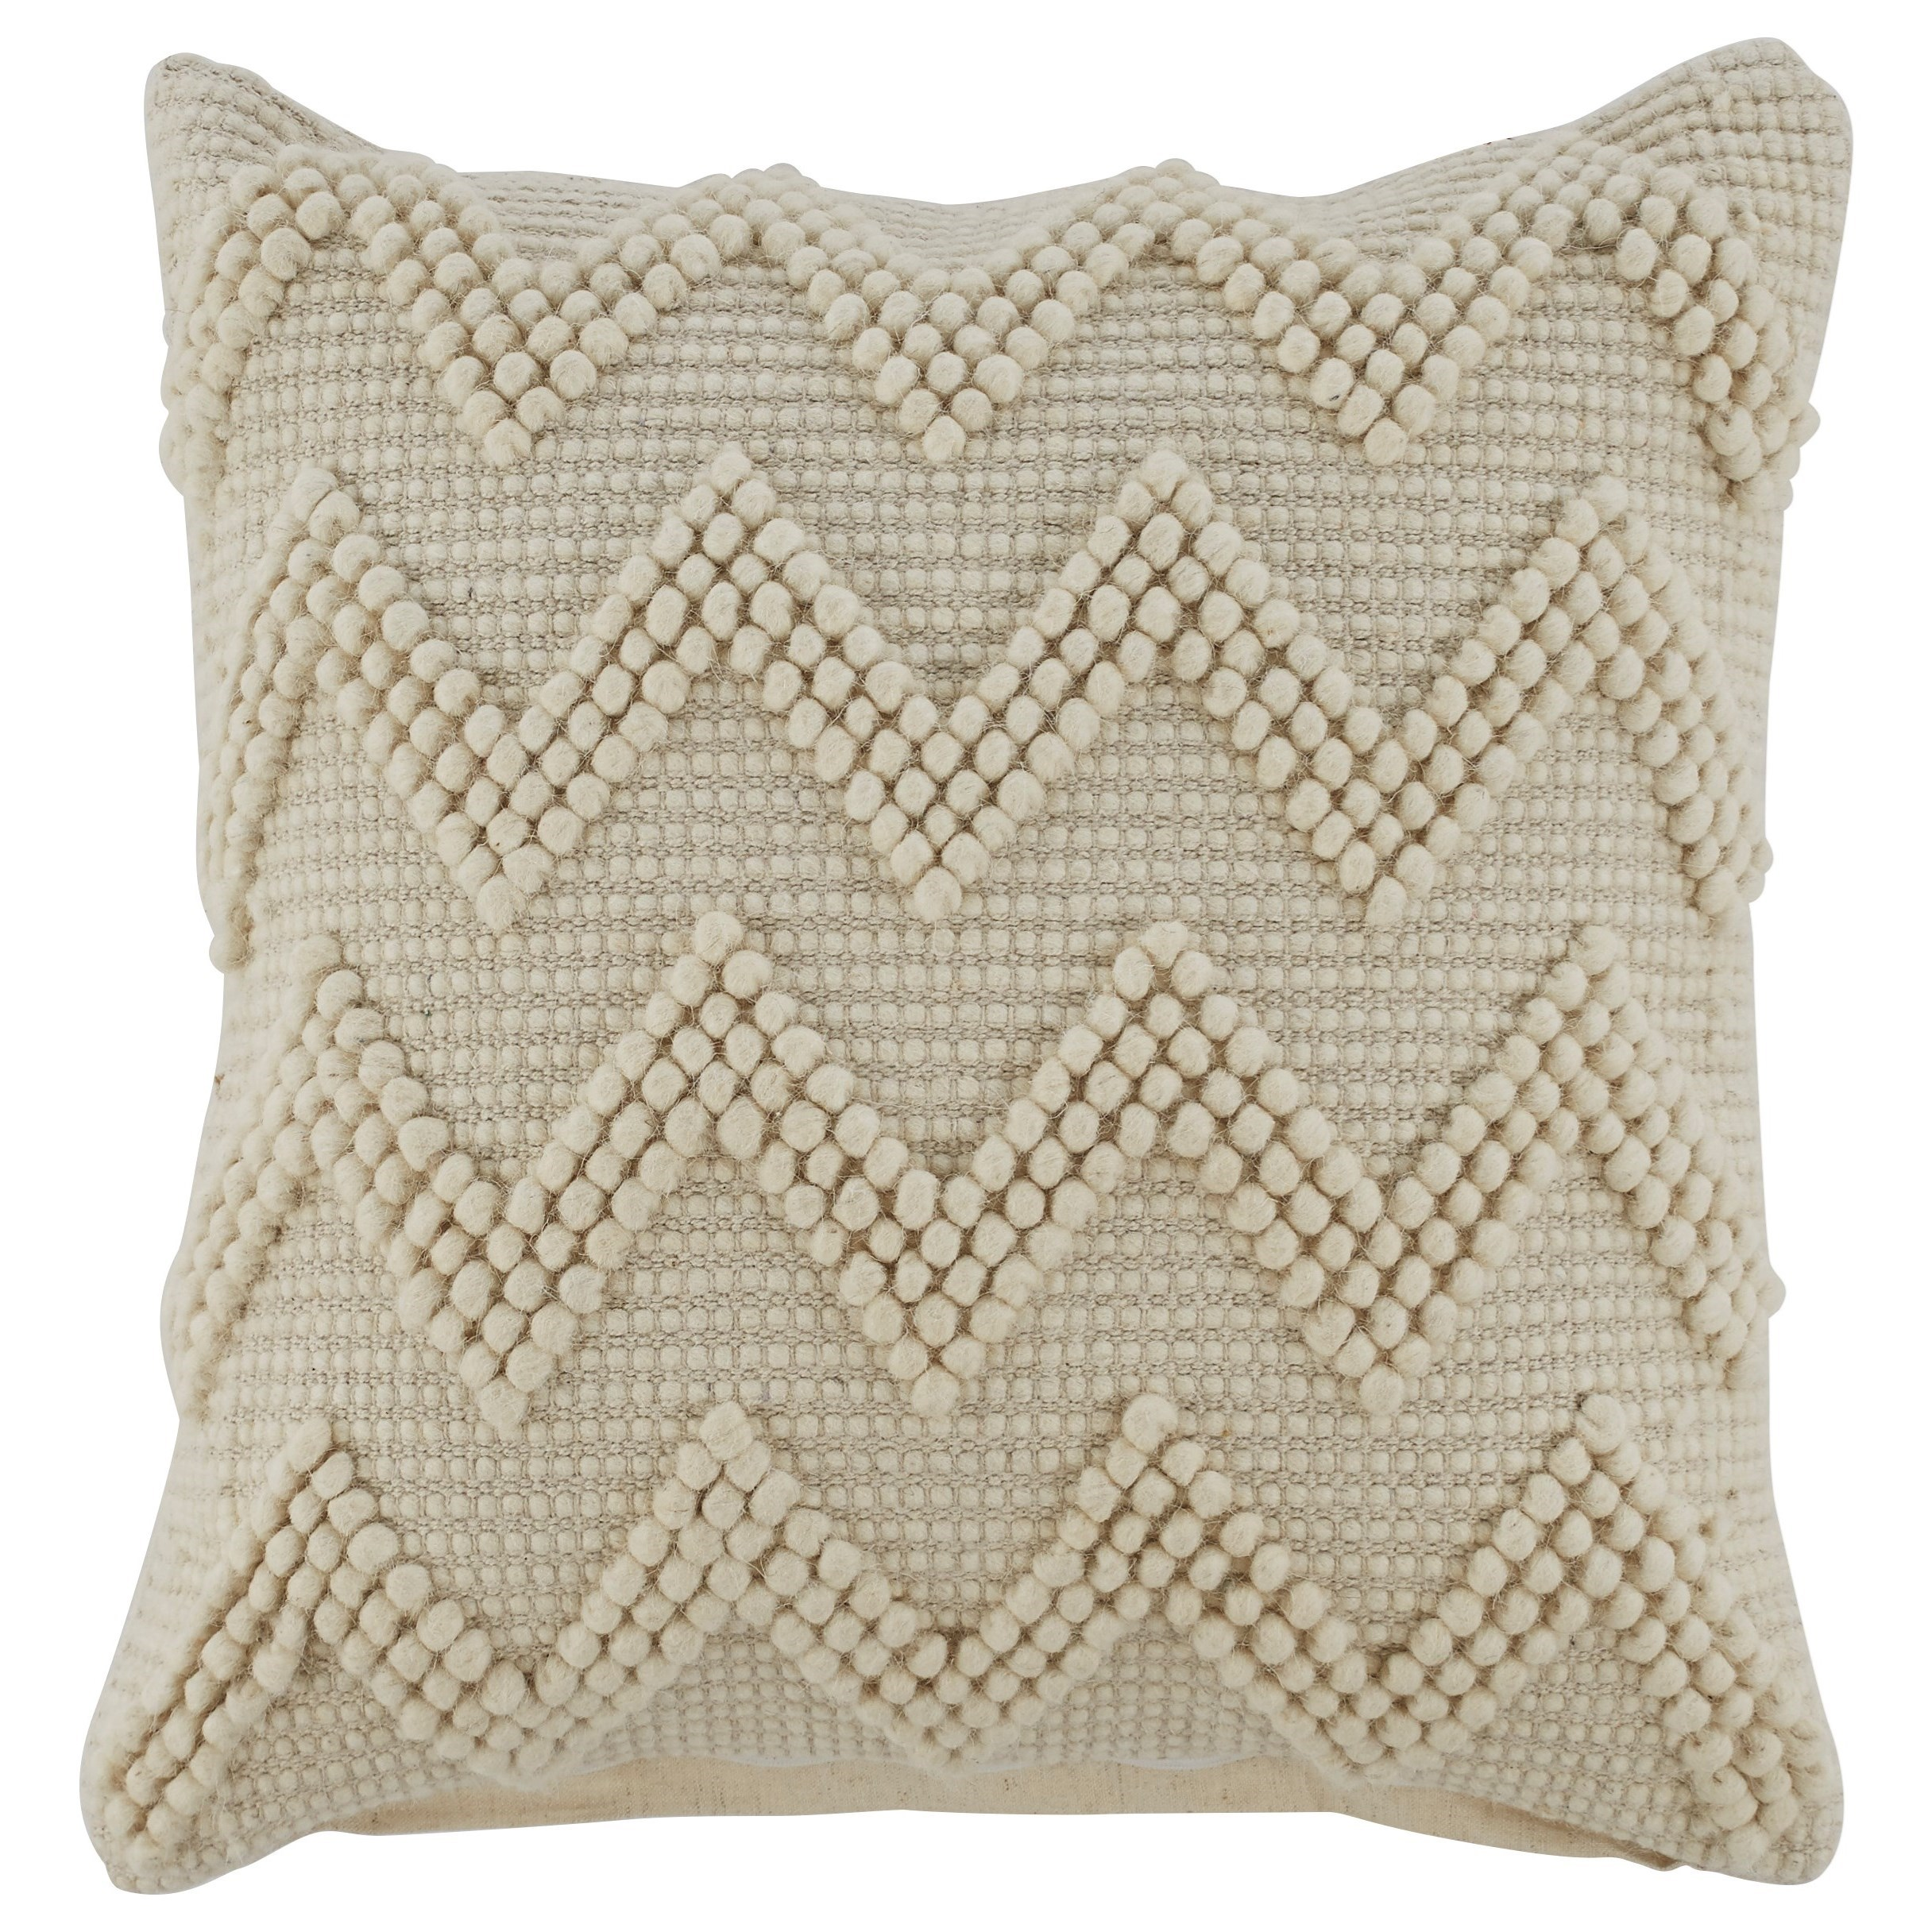 Pillows Amie Cream Pillow by Signature Design by Ashley at Northeast Factory Direct